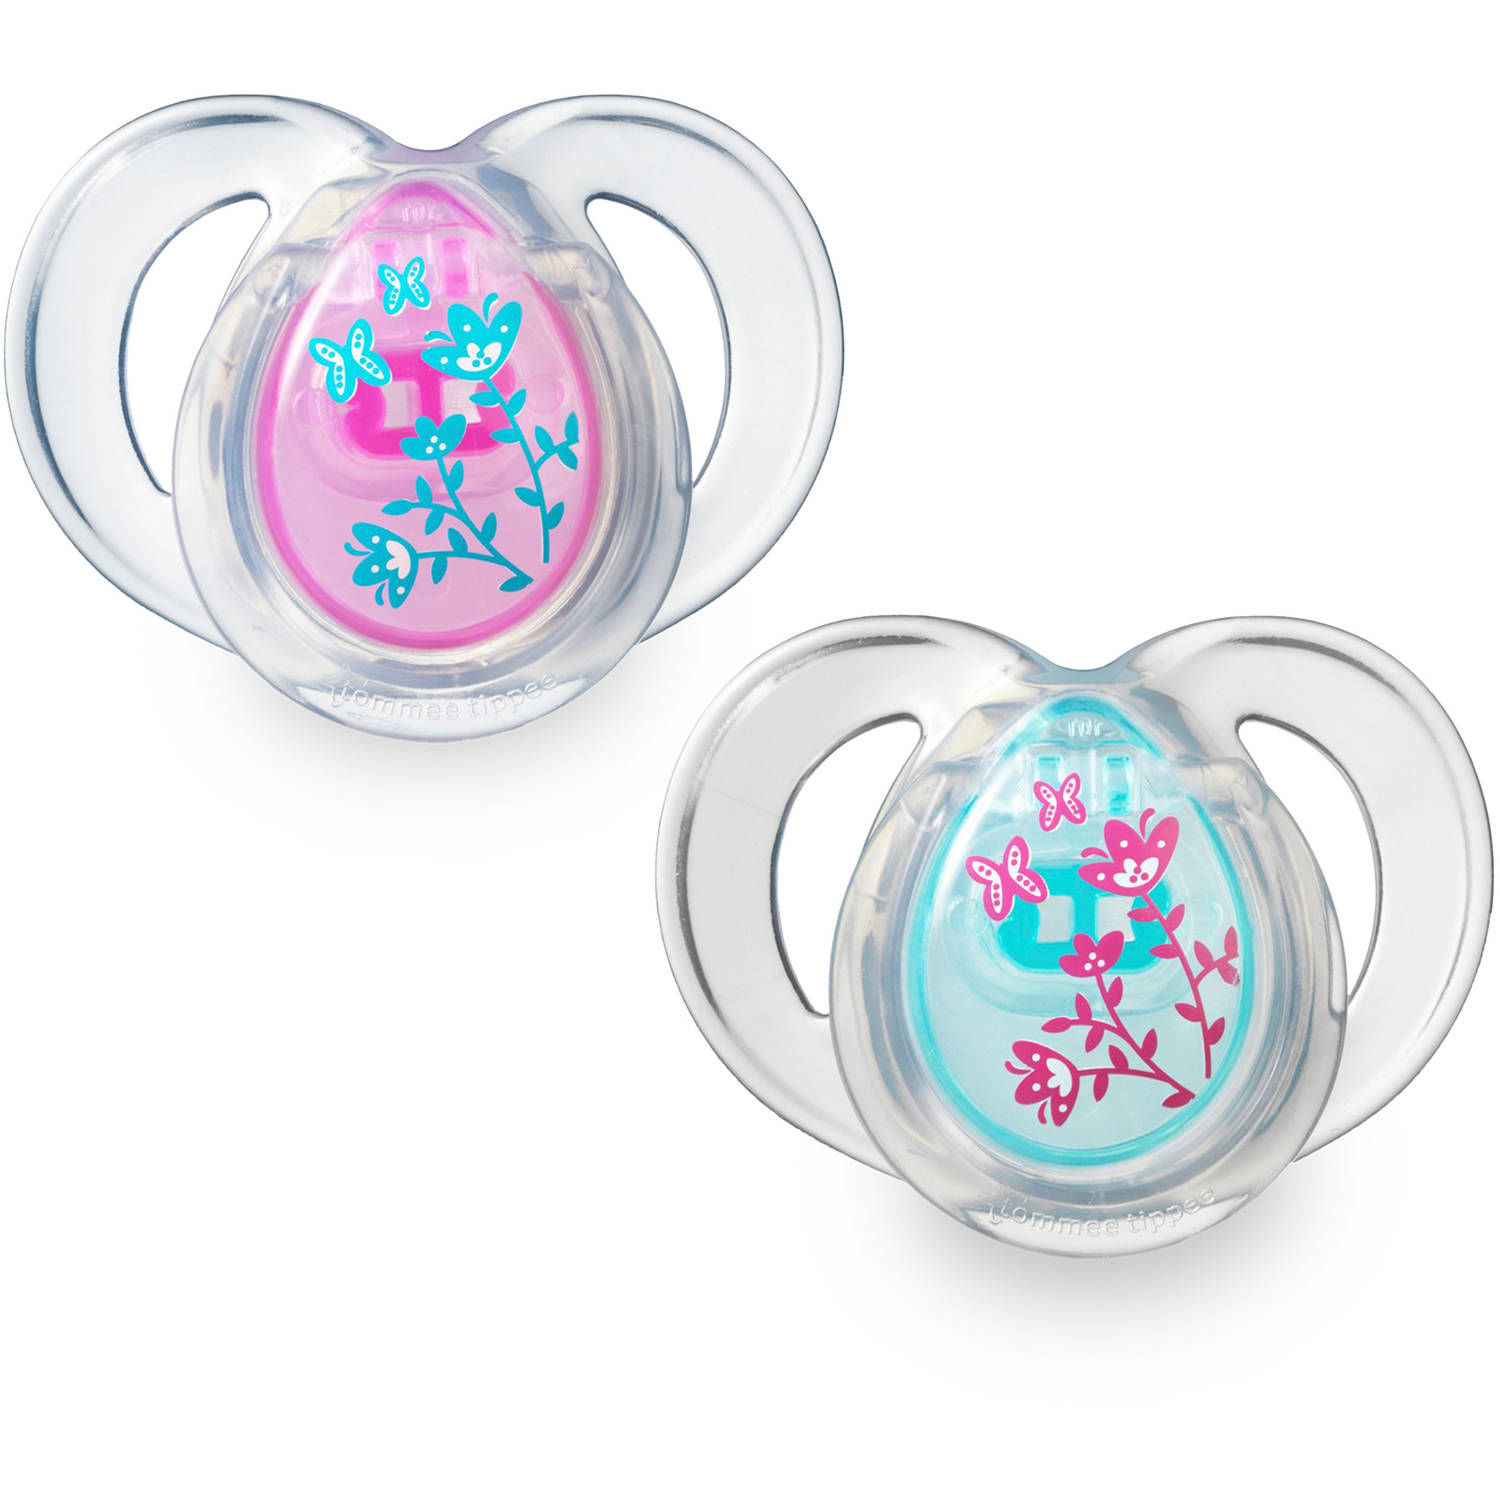 Tommee Tippee Closer to Nature 6-18 Month Everyday Pacifiers, 2pk, Girl